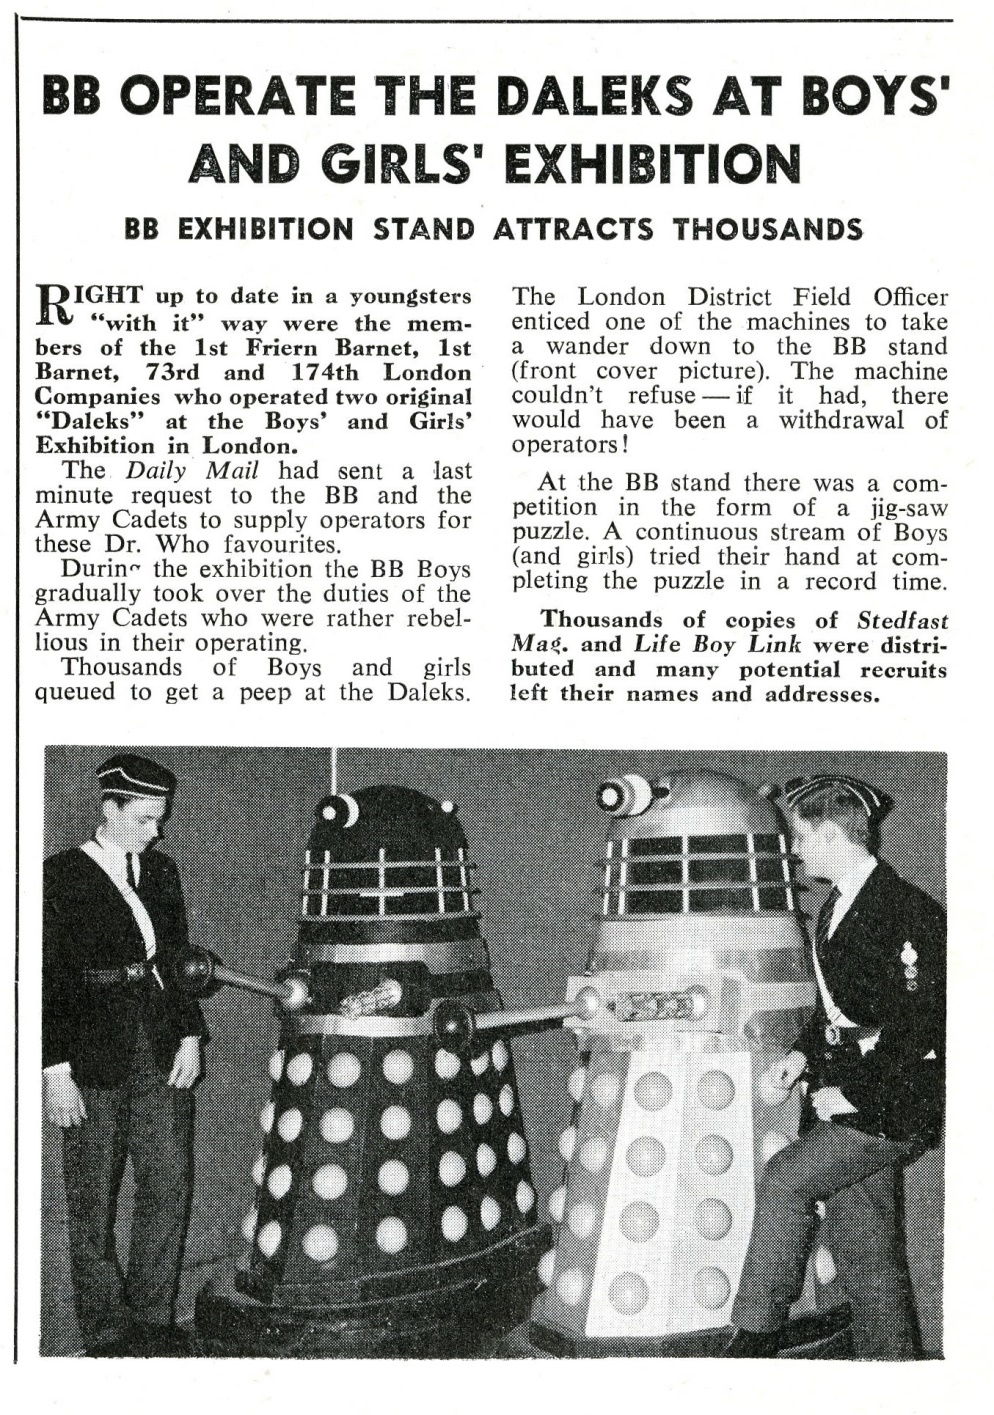 Stedfast Magazine, February 1965, describing the Boys' Brigade support to the Daily Mail Schoolboys and Girls Exhibition